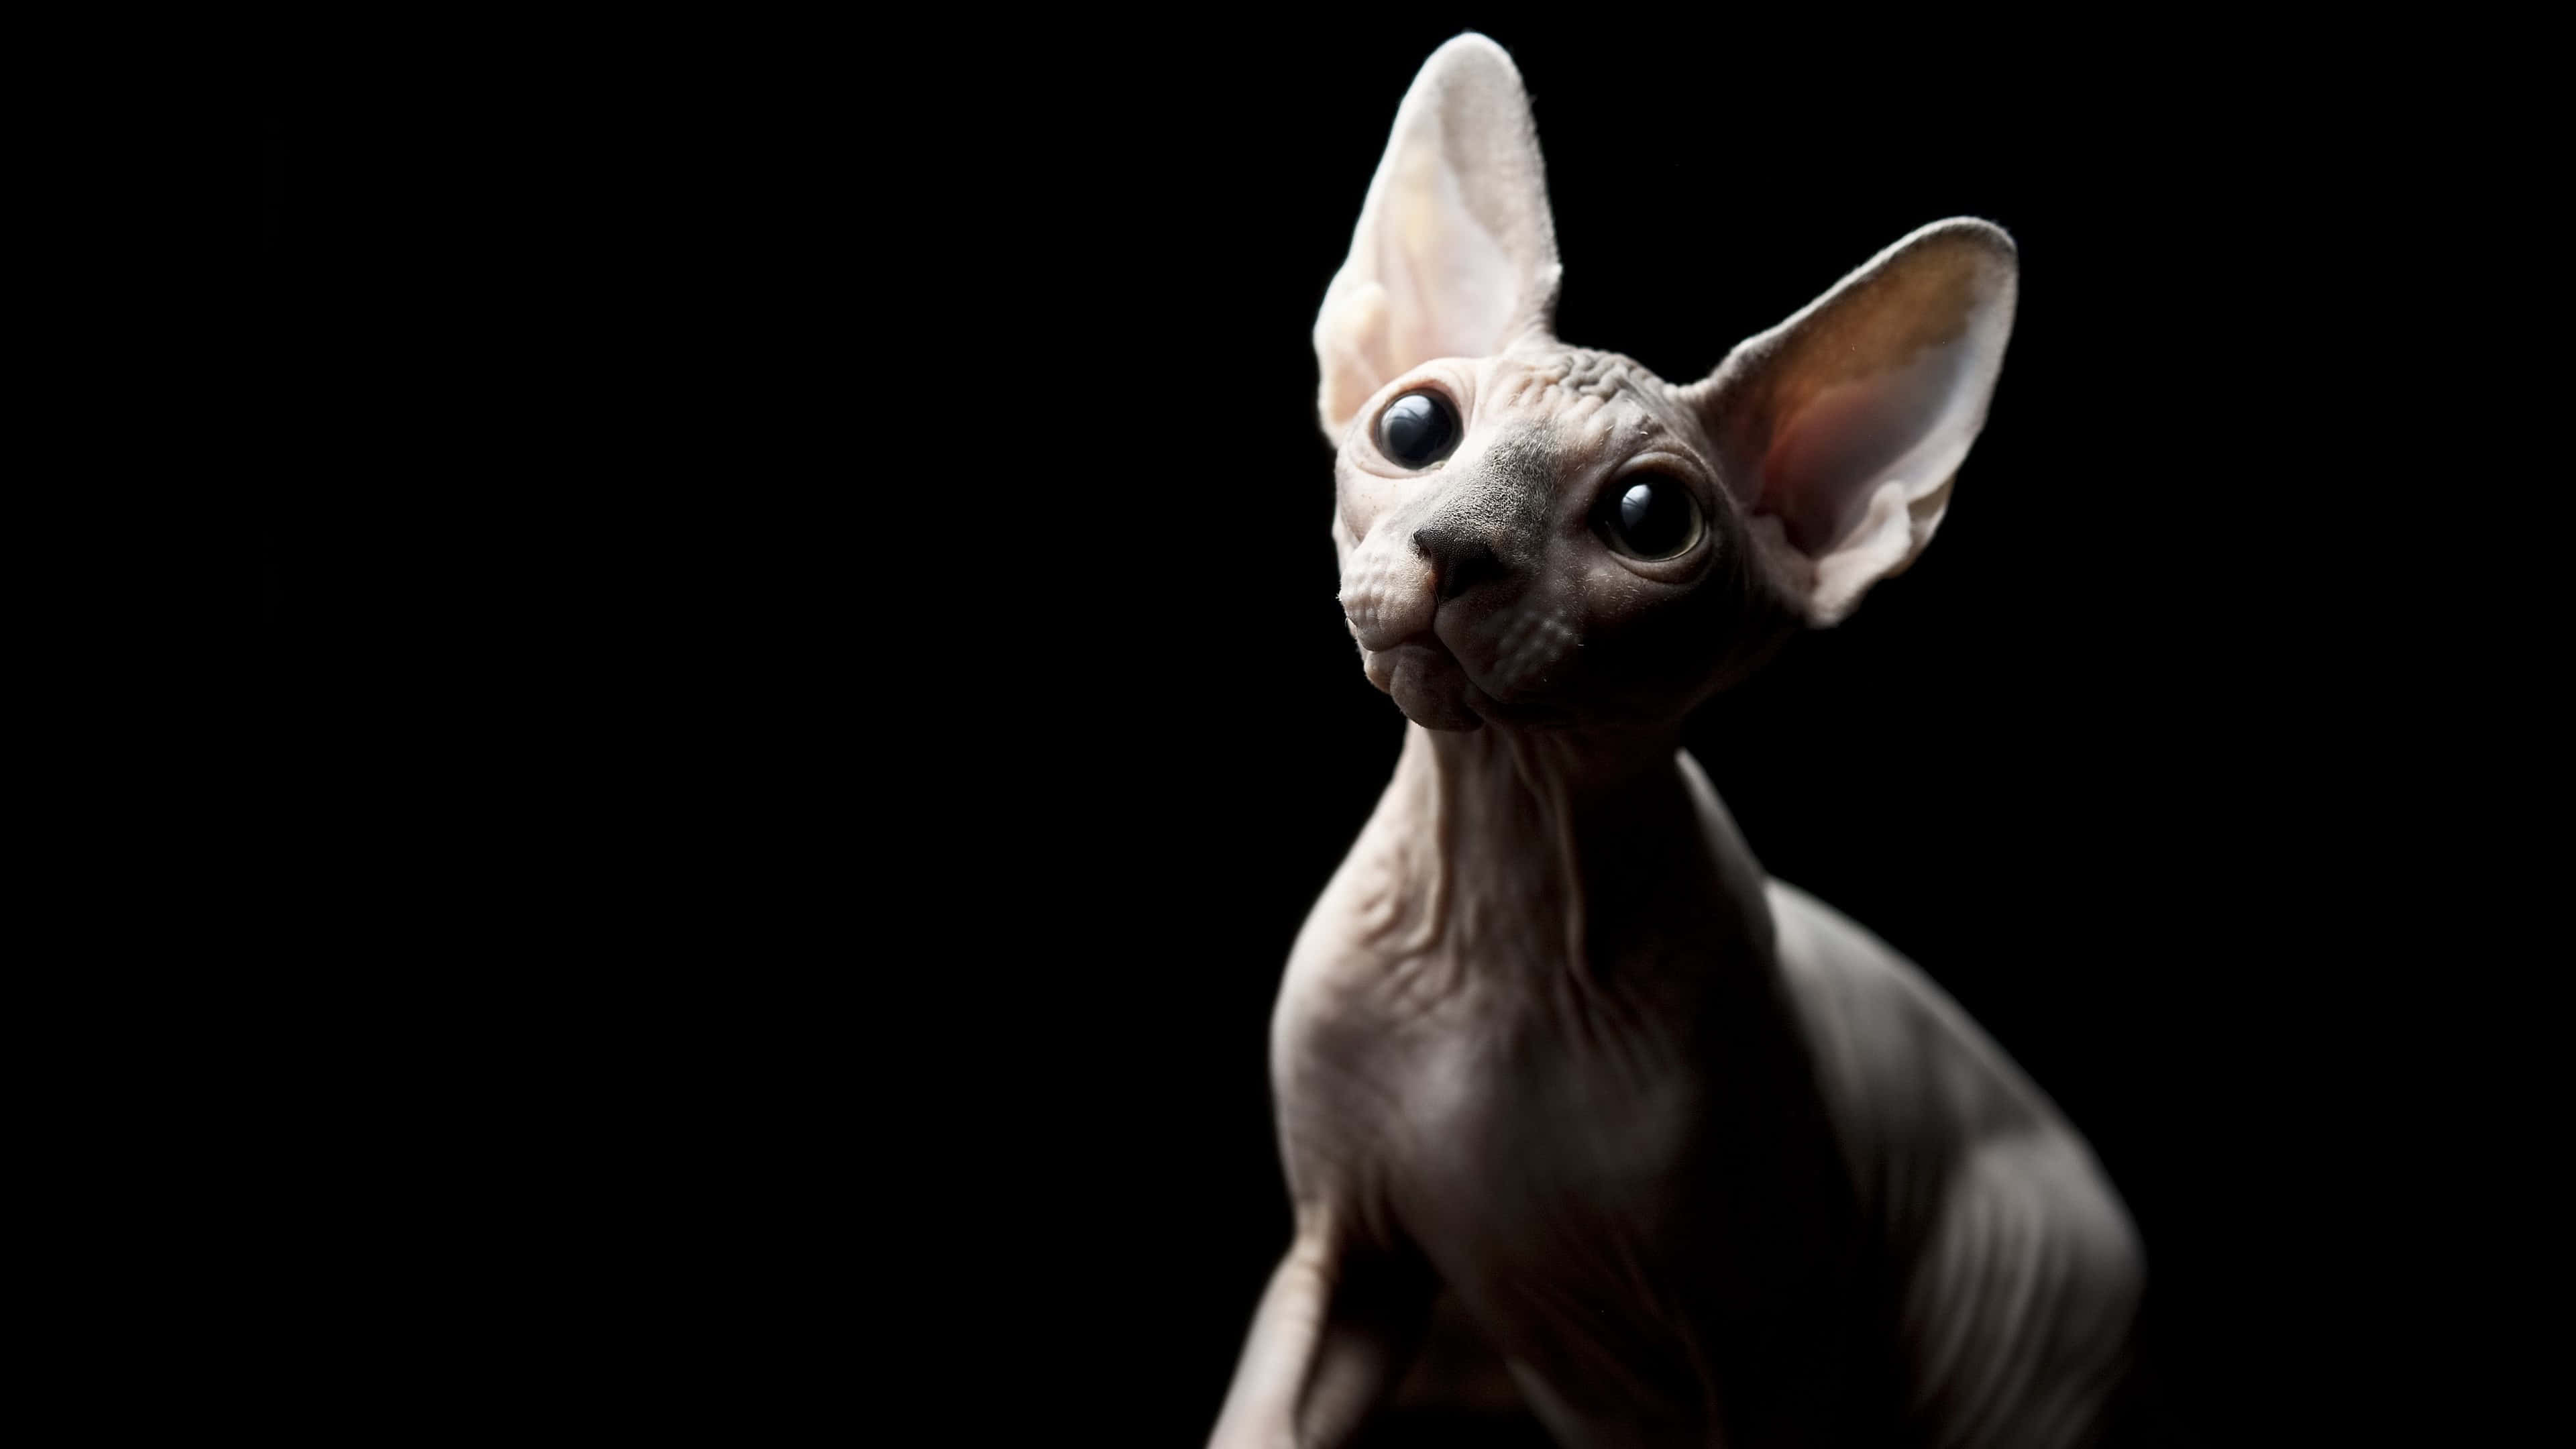 sphynx cat uhd 4k wallpaper